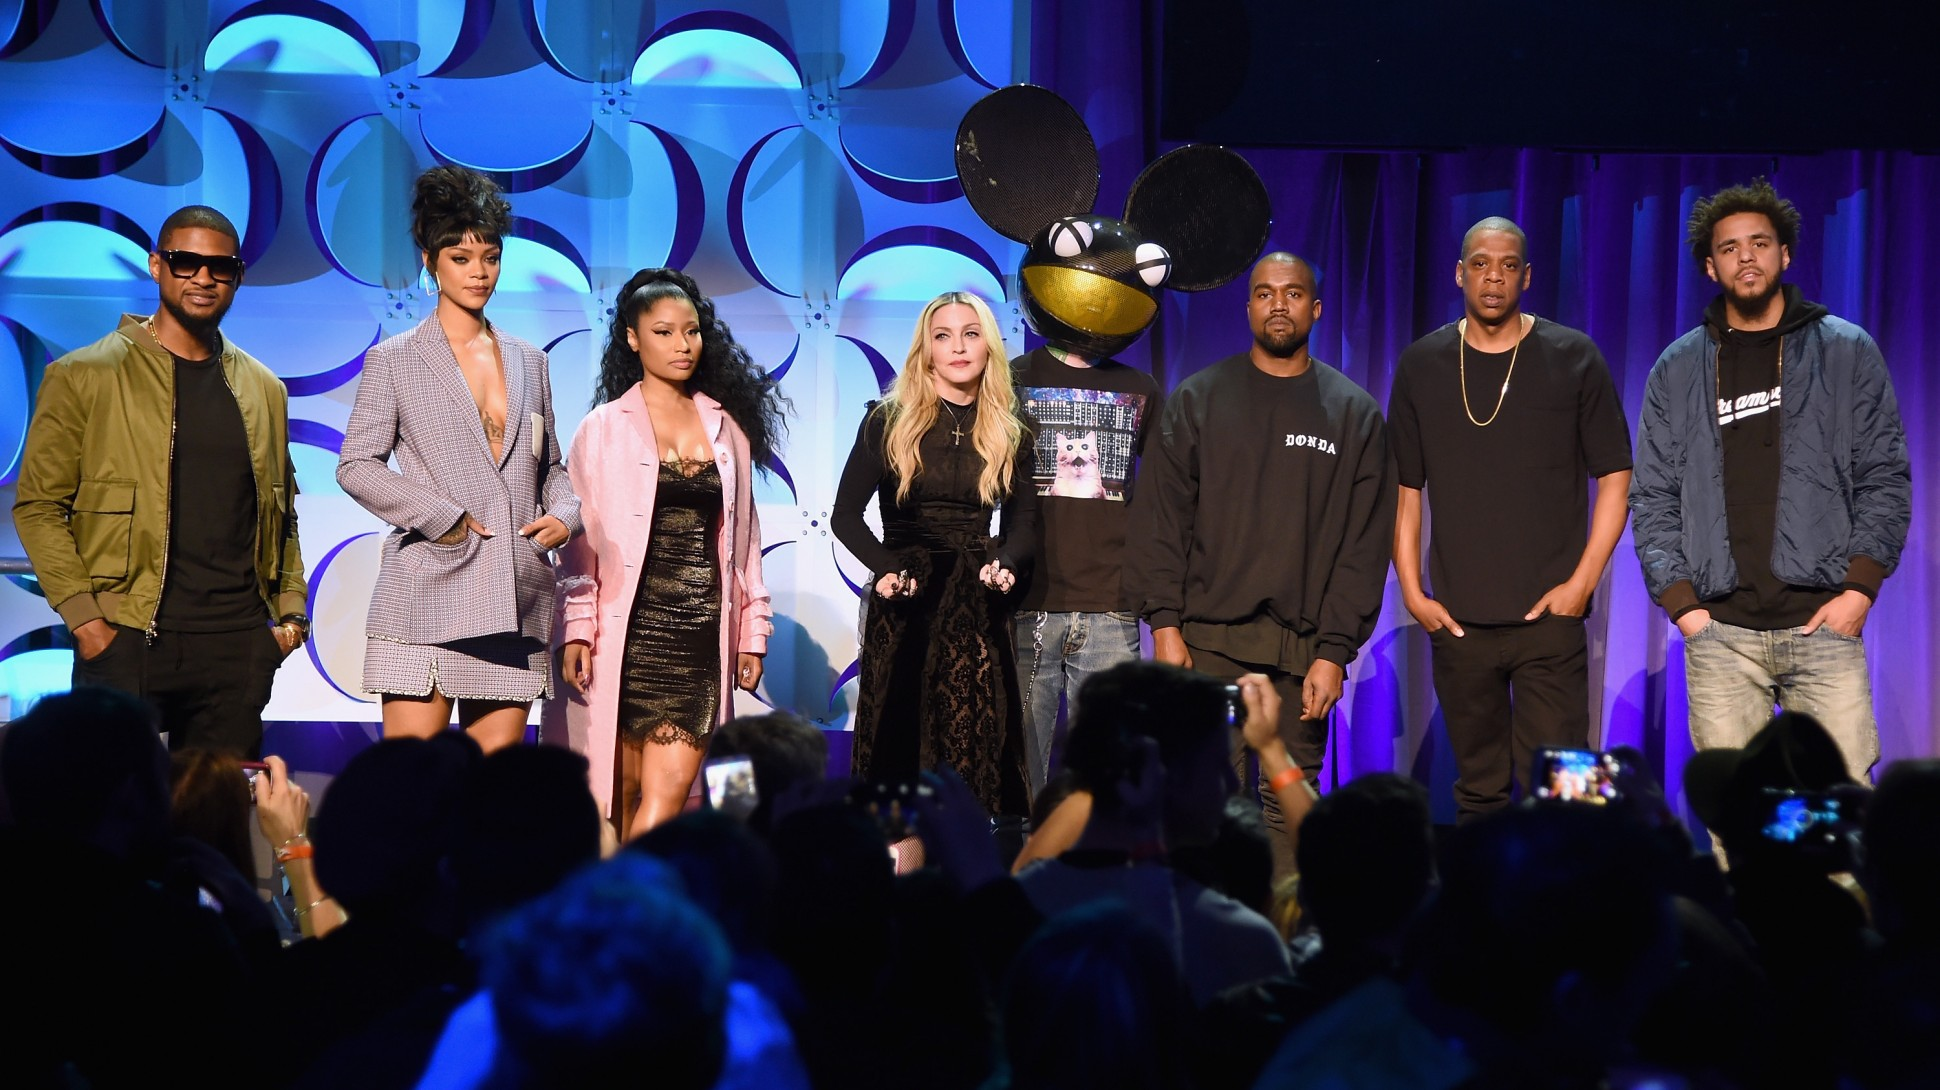 With Tidal, Jay Z thinks that you'll pay $20 per month to rent higher quality music